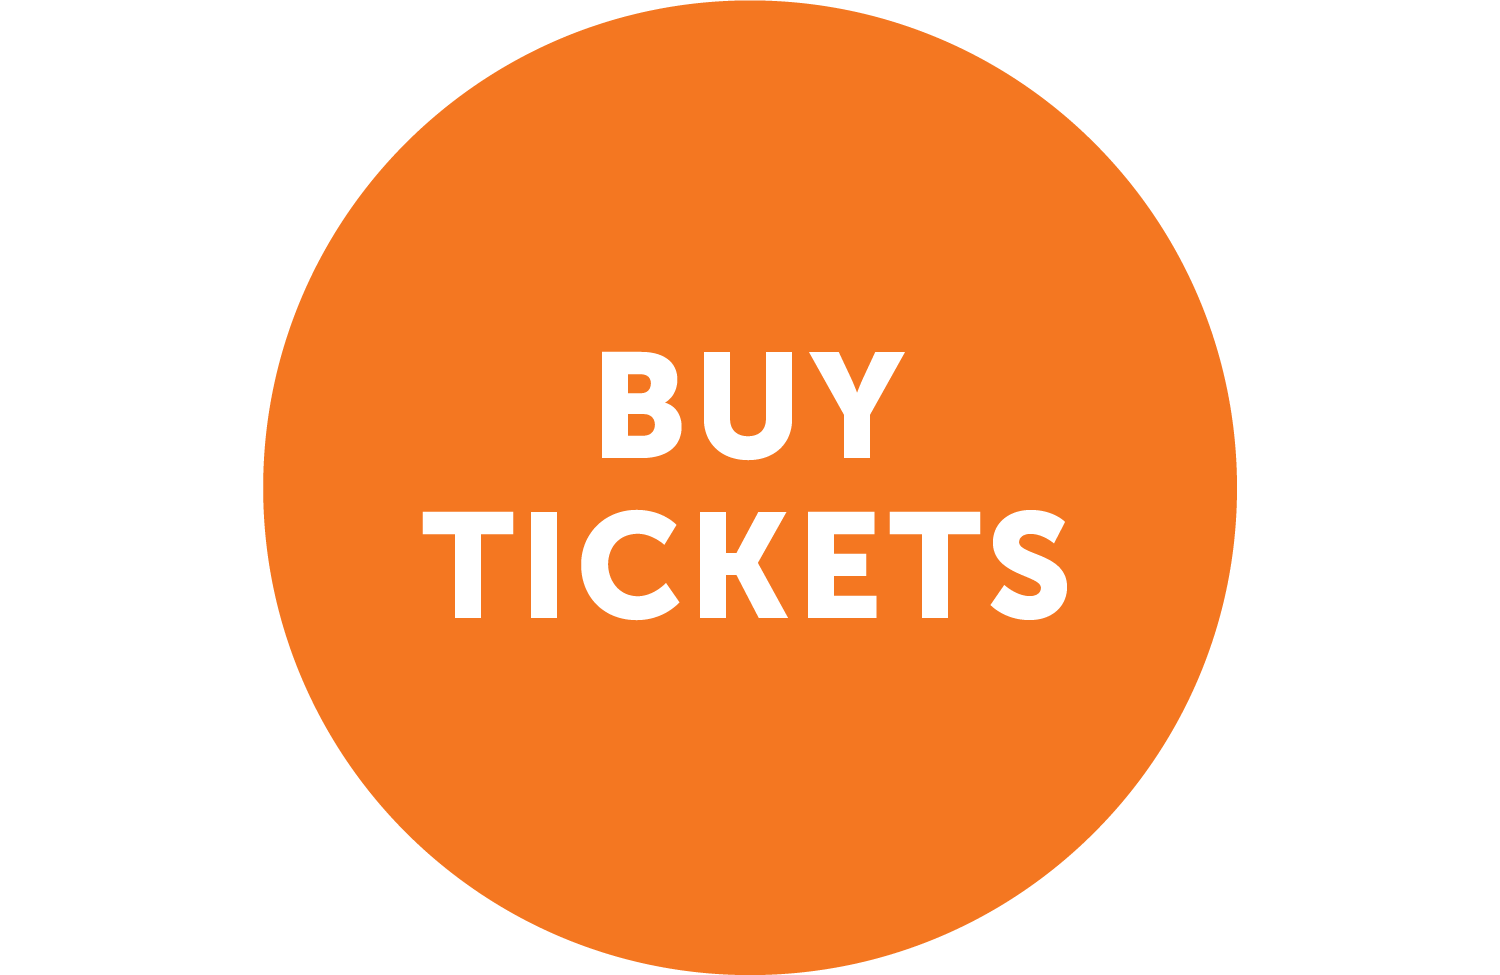 IMW_Logo_BUY TICKETS_wide.png